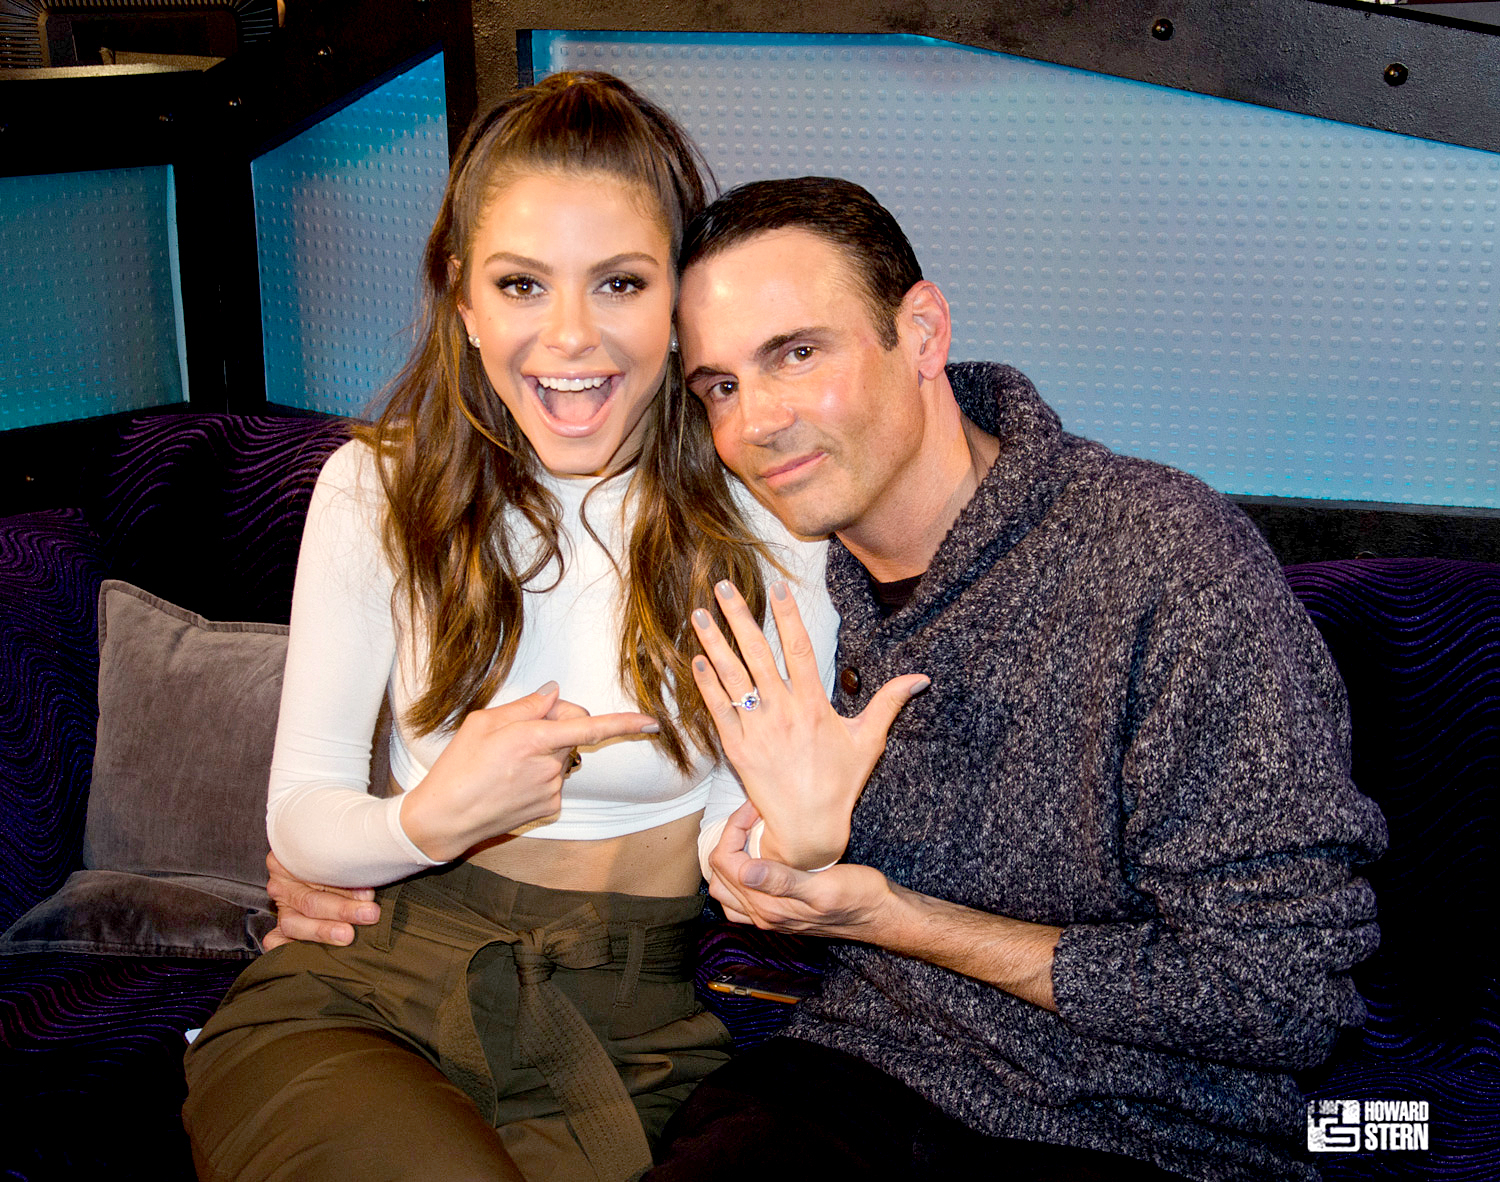 Maria Menounos and Keven Undergaro on The Howard Stern Show.